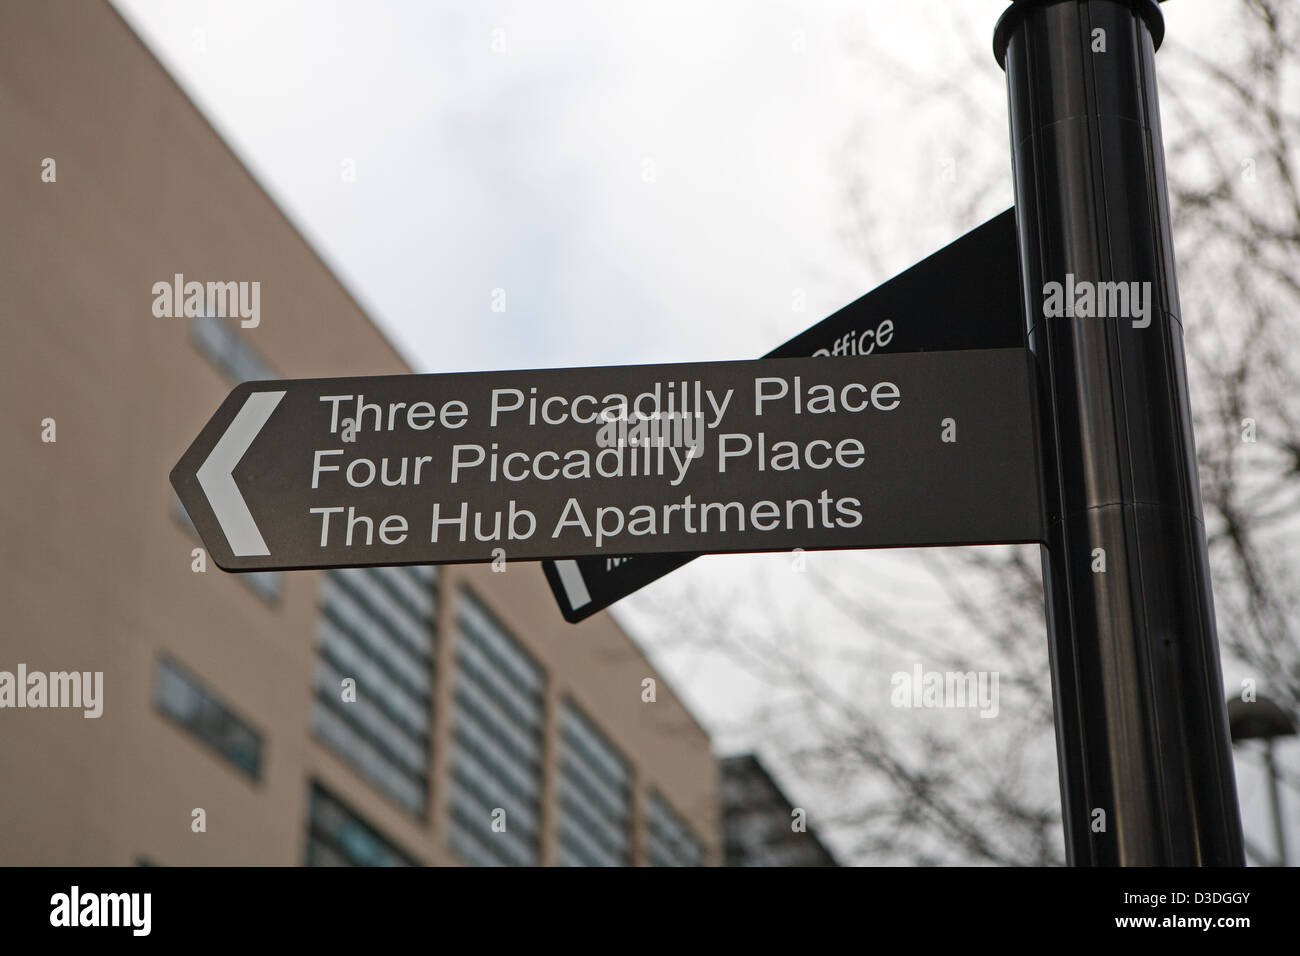 Street sign  in Piccadilly place Manchester England - Stock Image